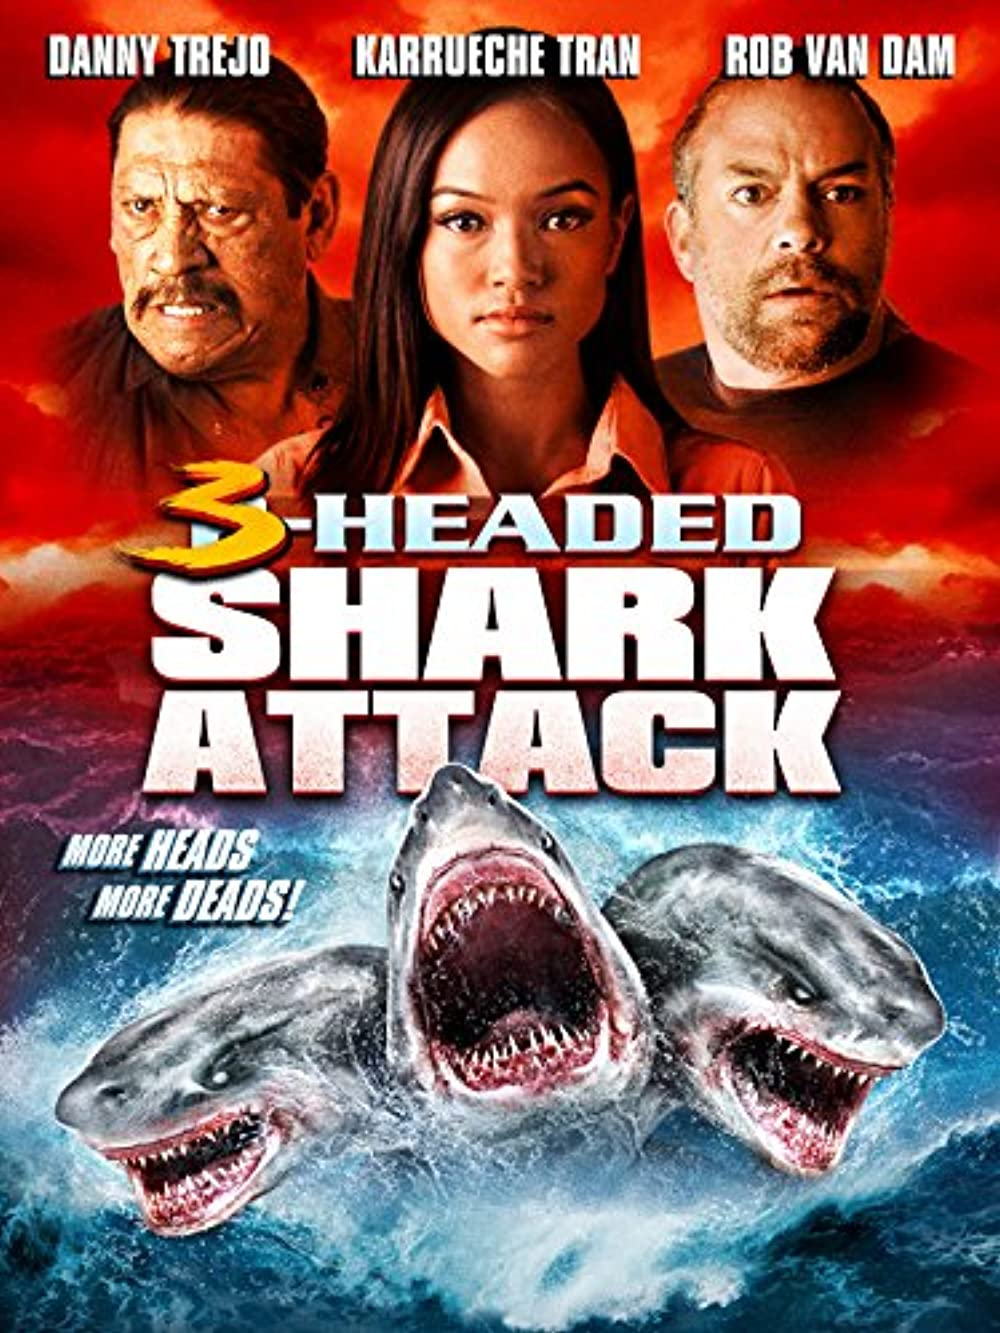 3 Headed Shark Attack 2015 Hindi Dual Audio 1080p BluRay ESubs 1.4GB Download